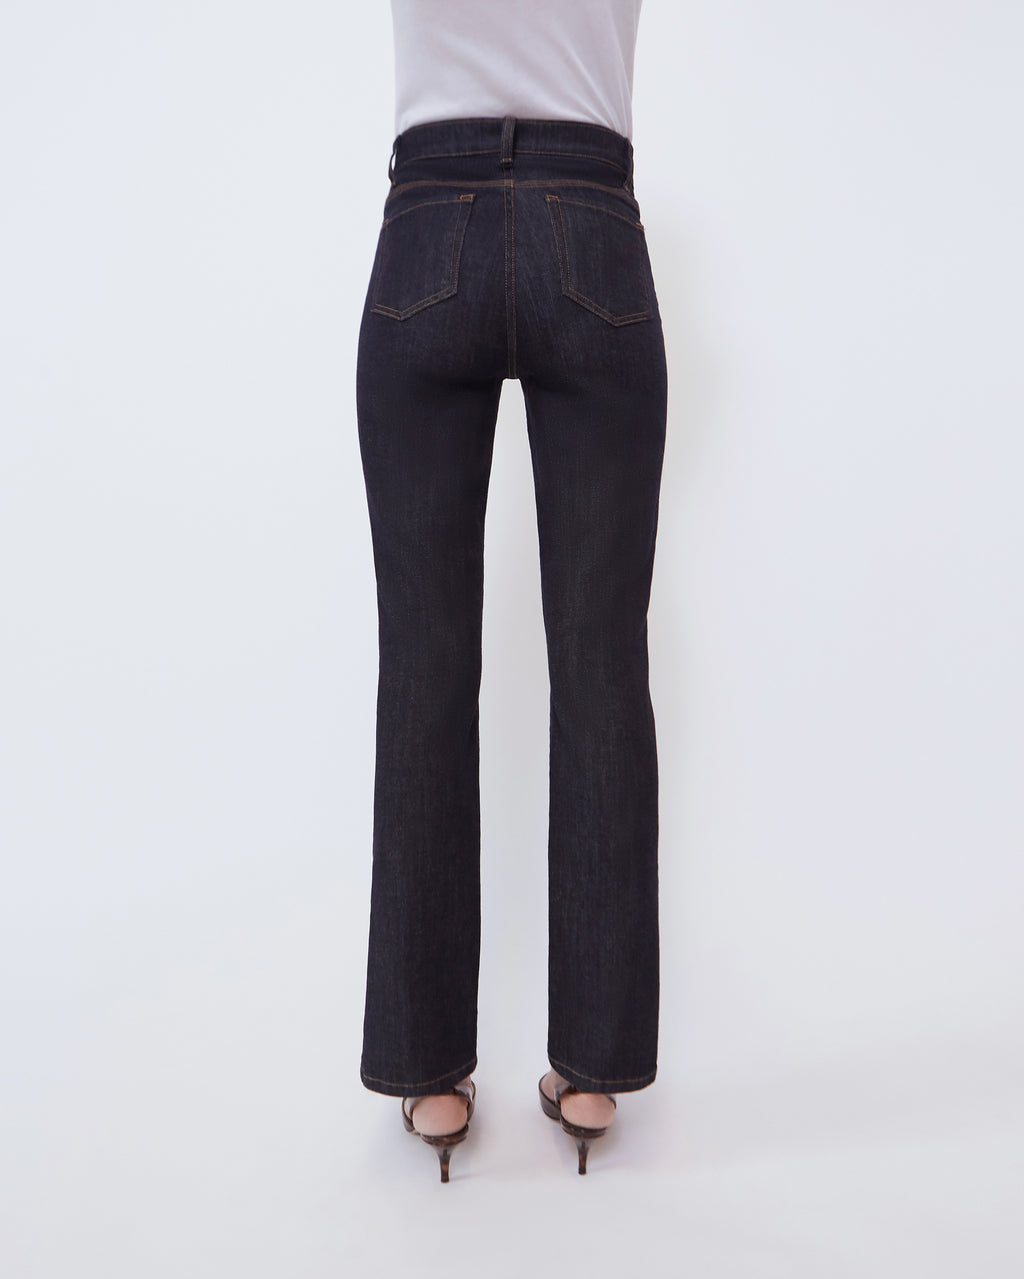 The Vented Skinny Jean in Abyss